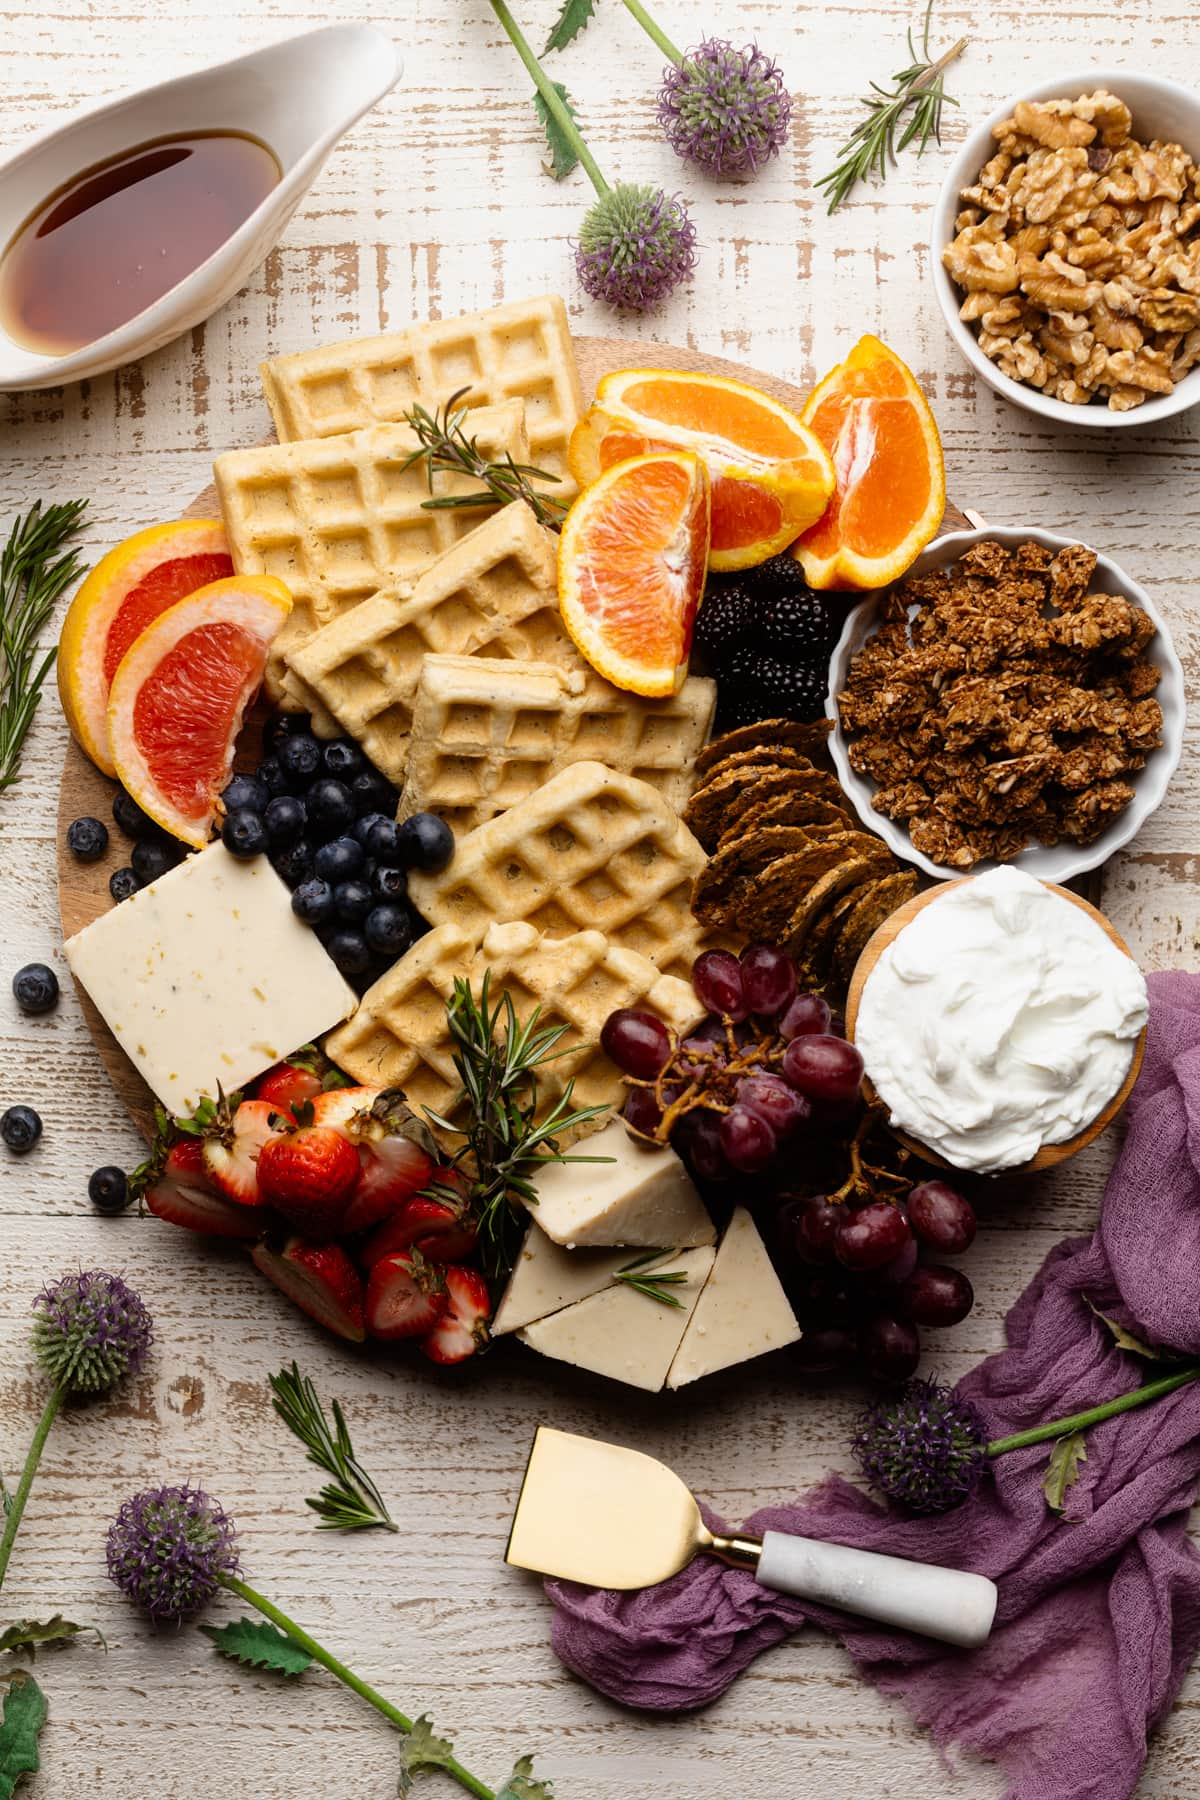 How To Build a Vegan Brunch Charcuterie Board